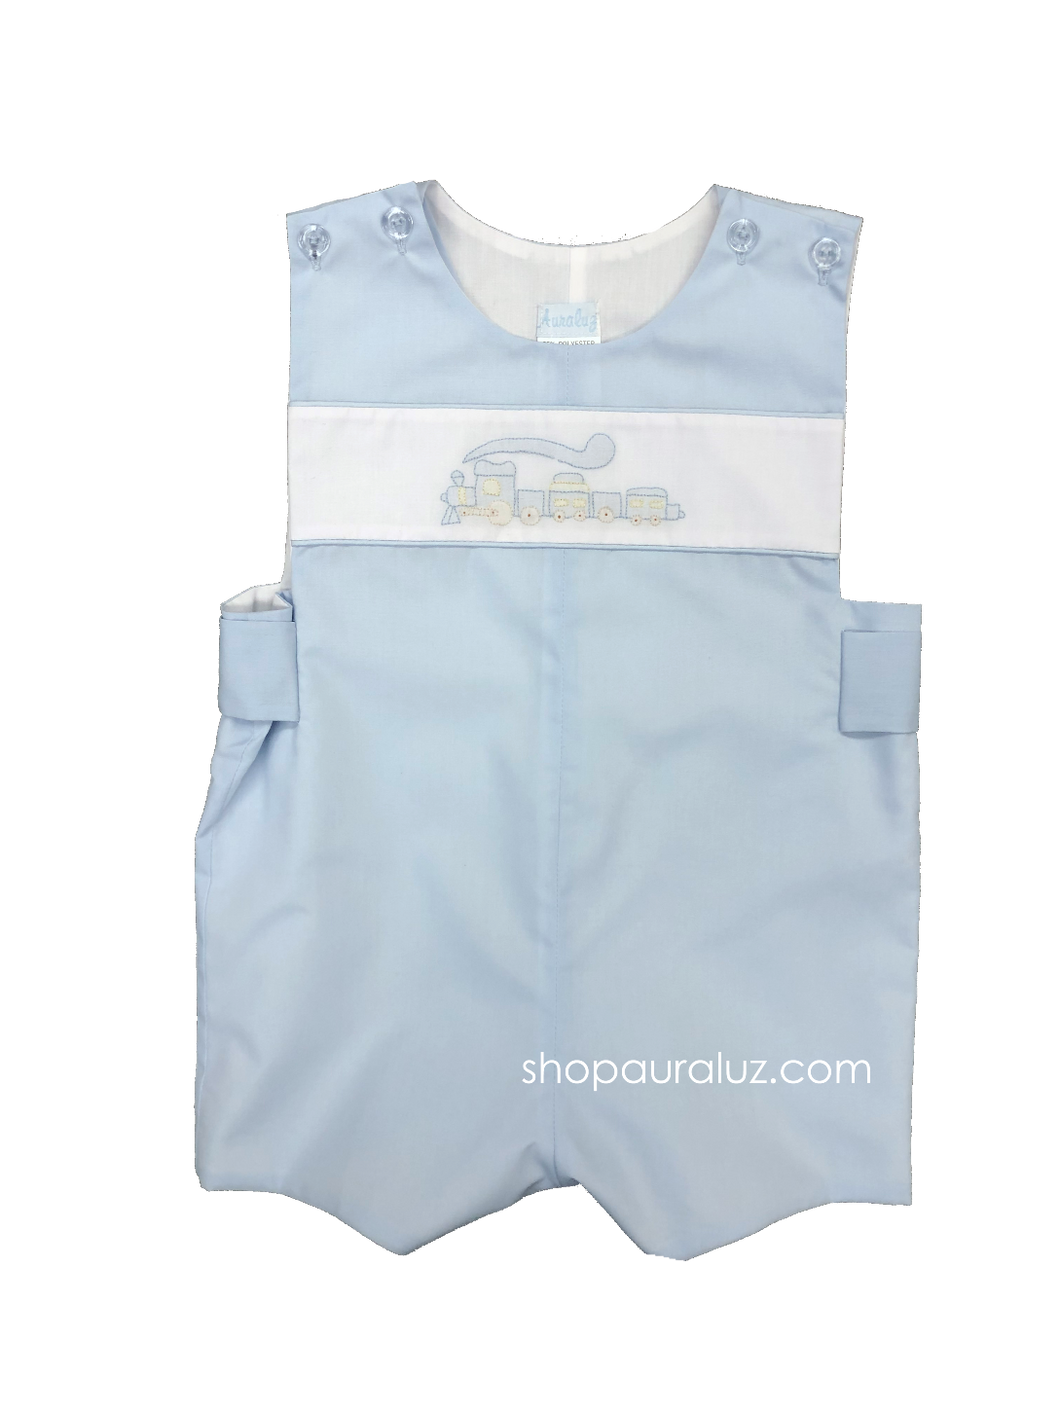 Auraluz Sleeveless Shortall..Blue with embroidered train